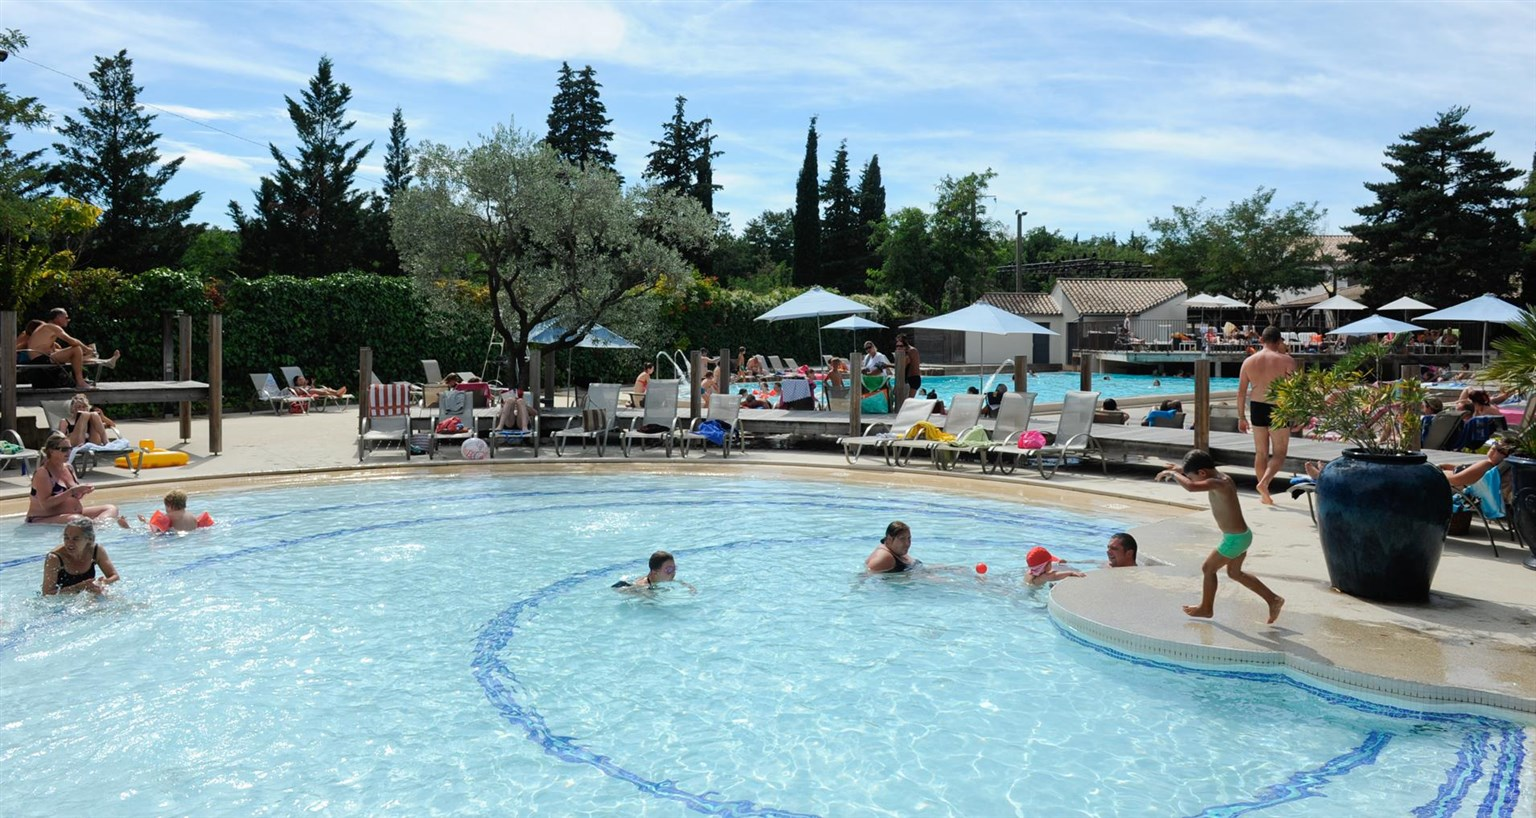 Camping cabourg avec piscine camping normandie piscine for Camping le lavandou avec piscine